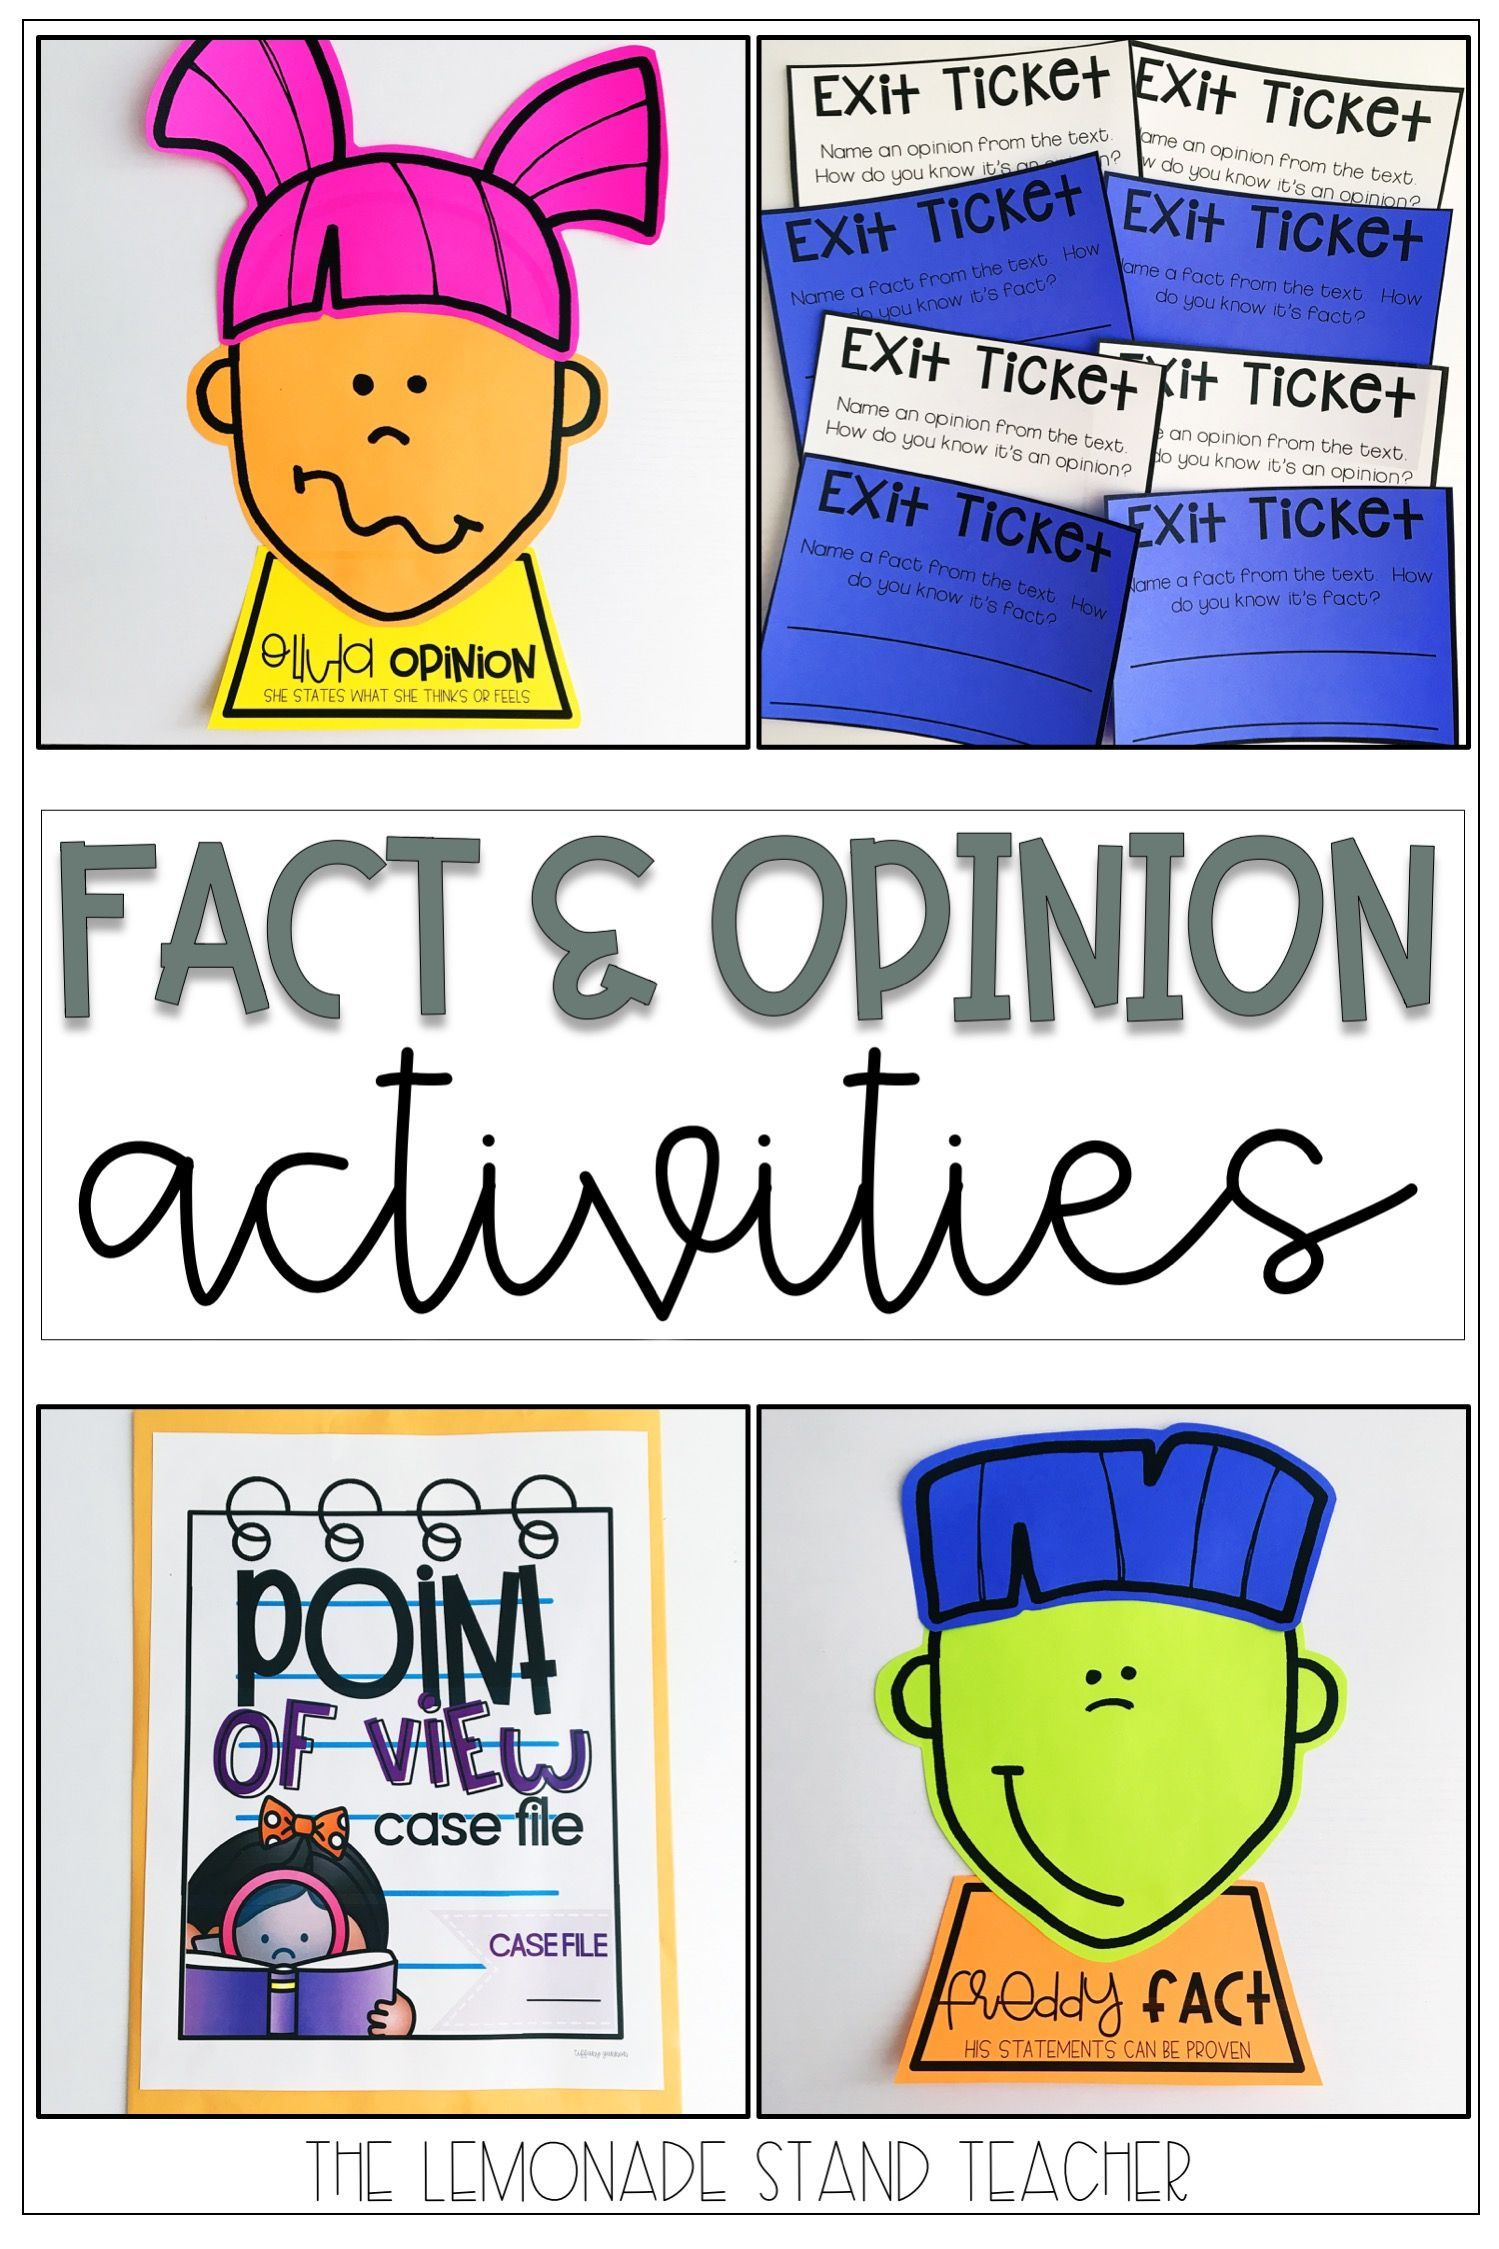 Fact And Opinion Worksheets And Activities Fact And Opinion Worksheet Fact And Opinion Teaching Reading Comprehension Fact or opinion worksheets